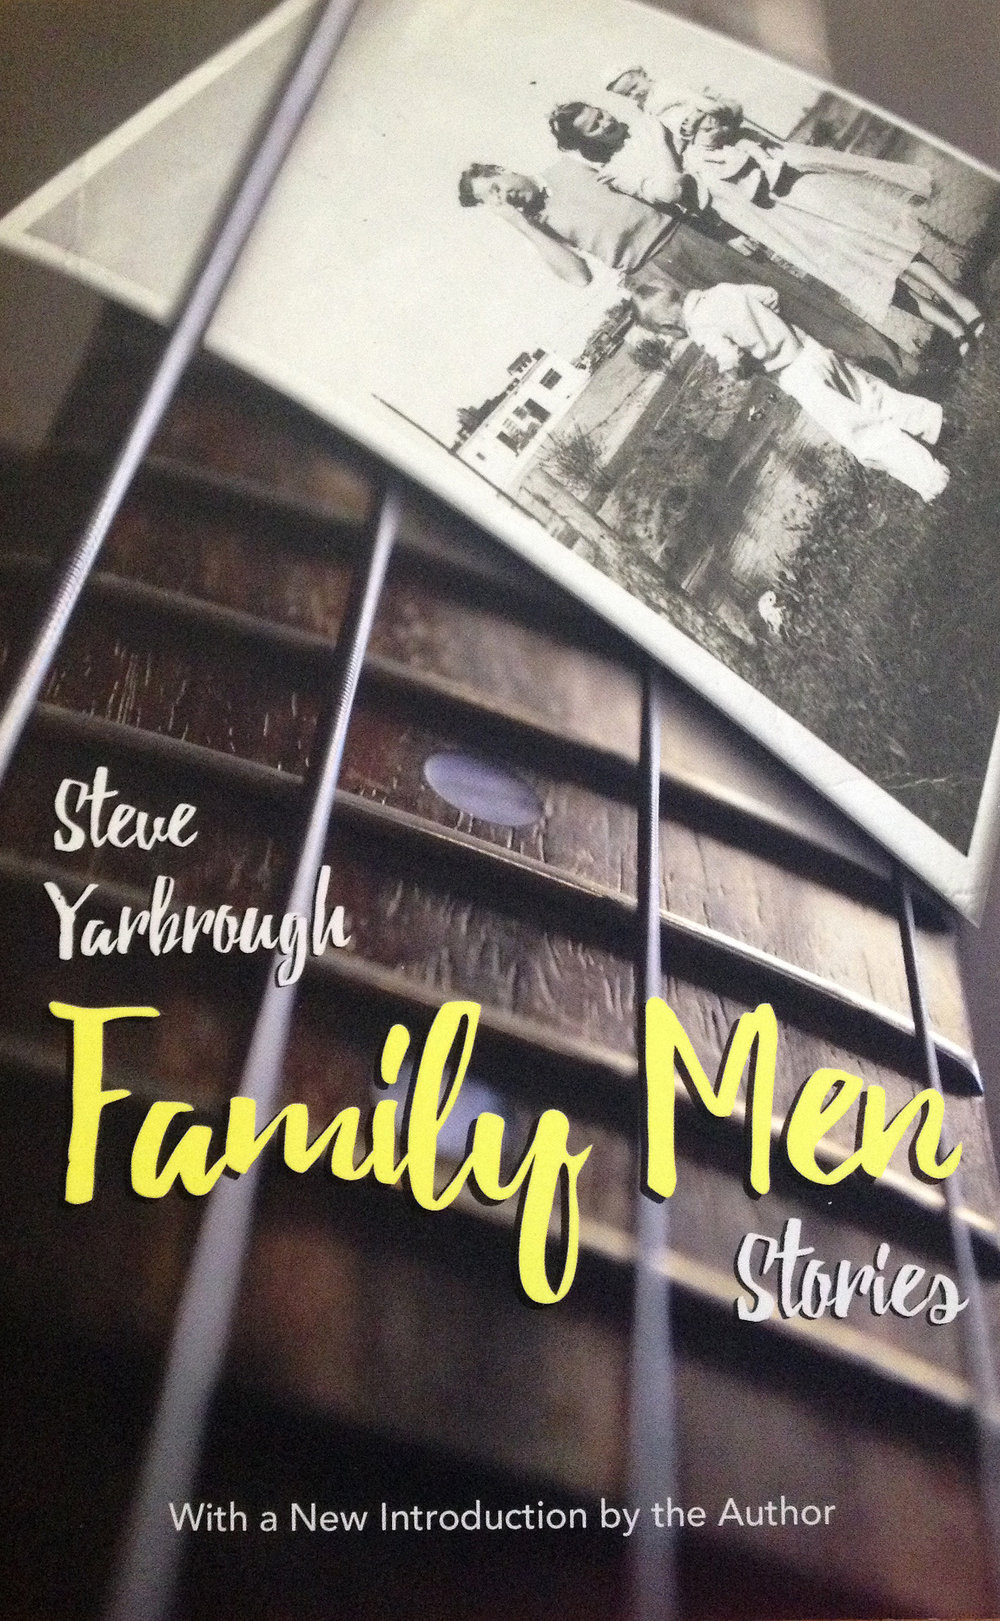 family-man-stories-cover.JPG